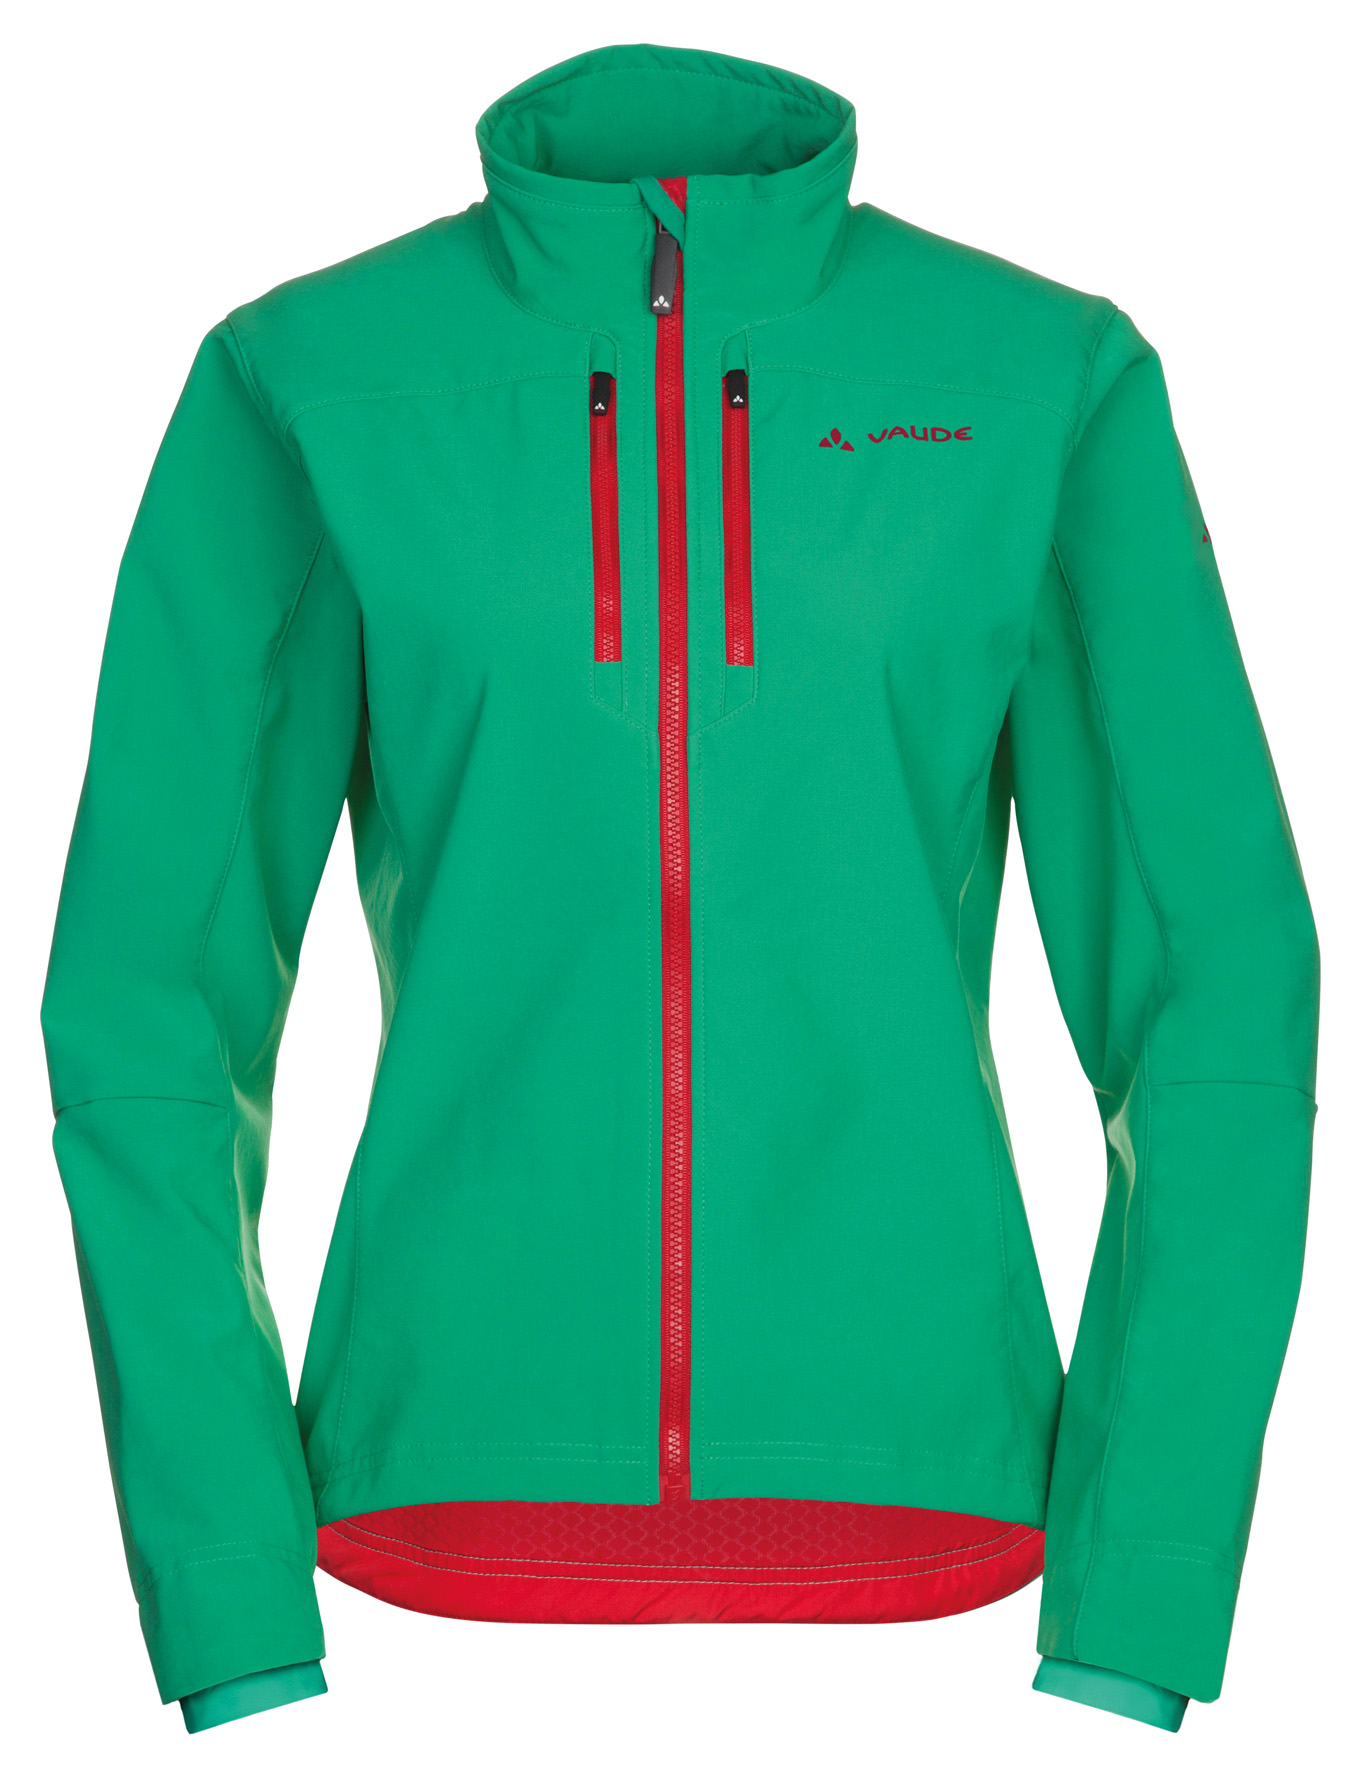 Women´s Qimsa Softshell Jacket atlantis Größe 38 - Women´s Qimsa Softshell Jacket atlantis Größe 38